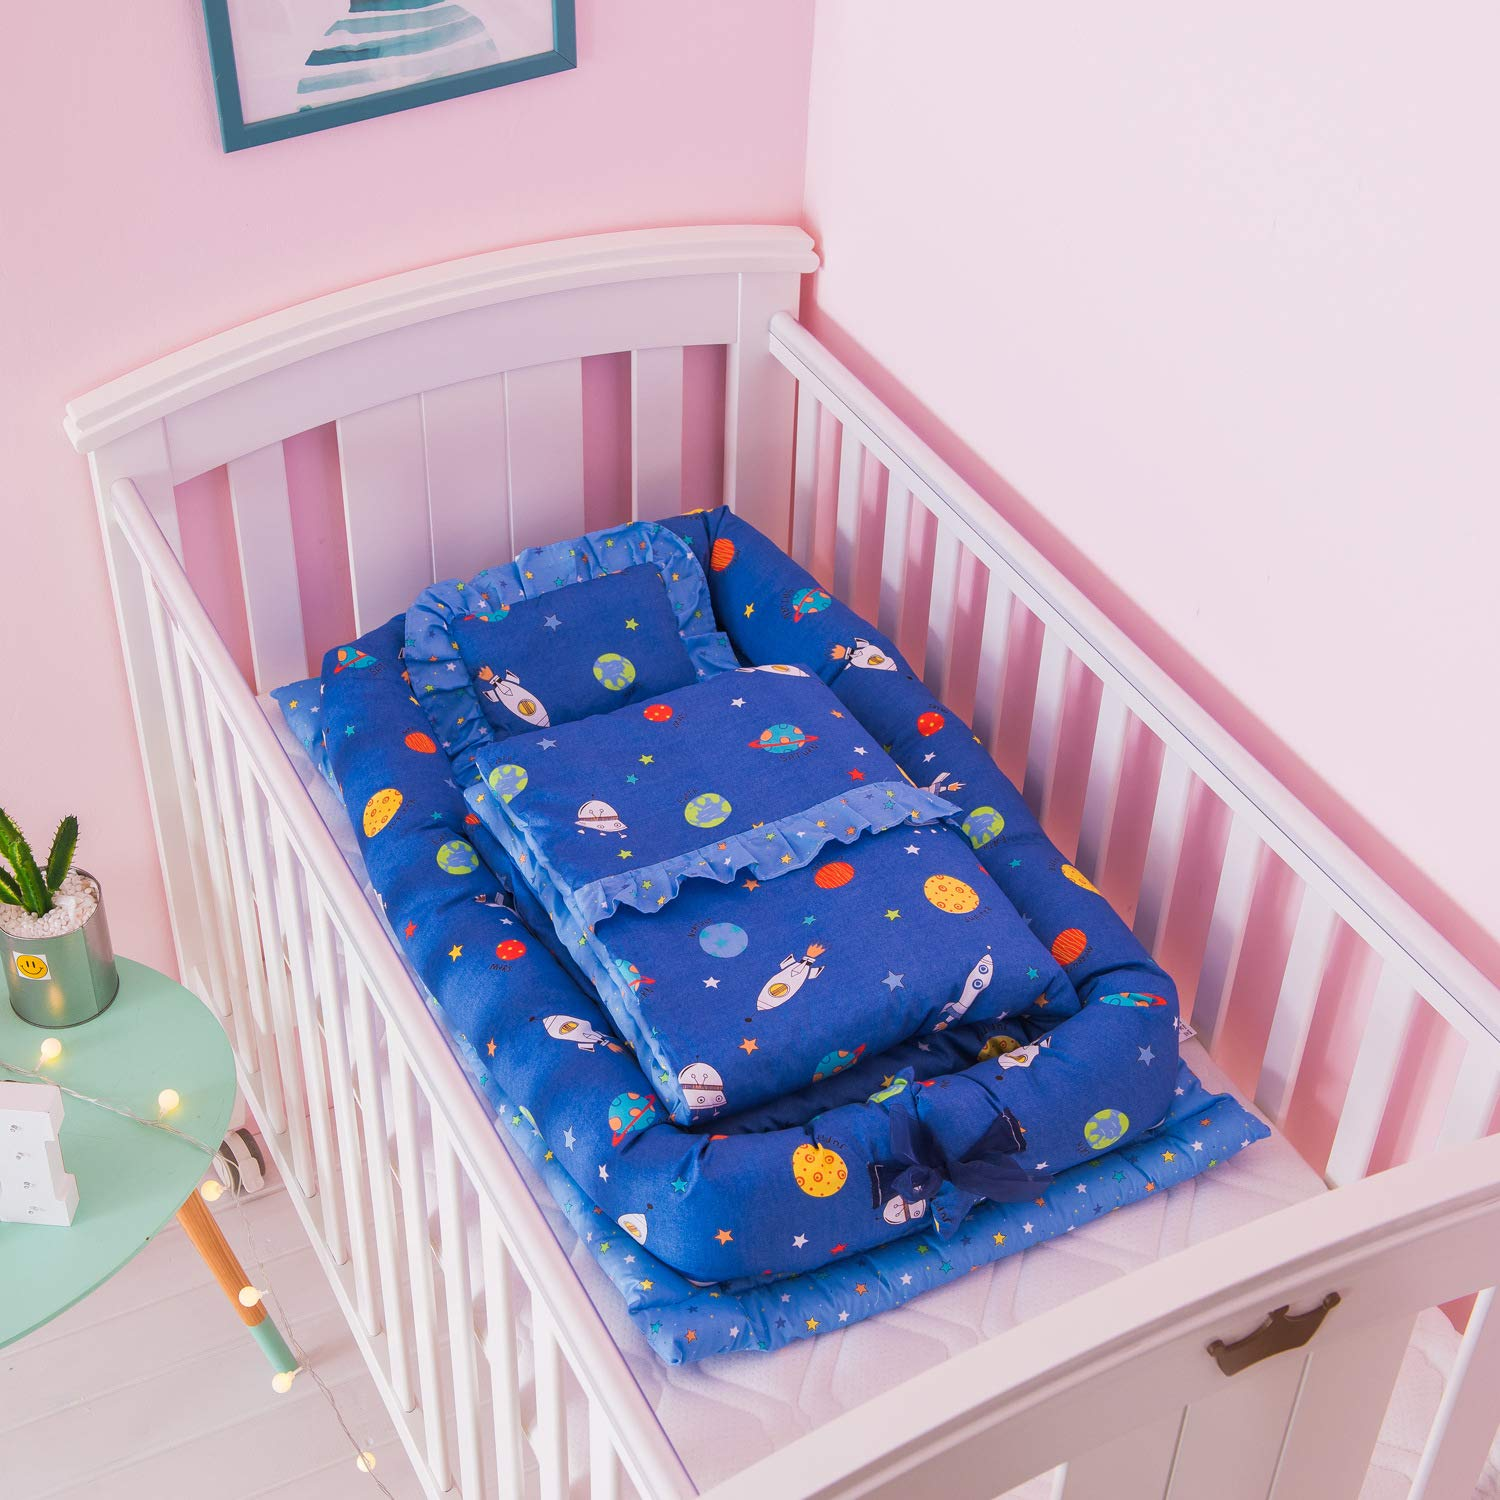 Baby Cot with Quilt (0-24 Months) Detachable Baby Isolated Bed Newborn Baby Sleeping Artifact Collapsible Bionic Bed